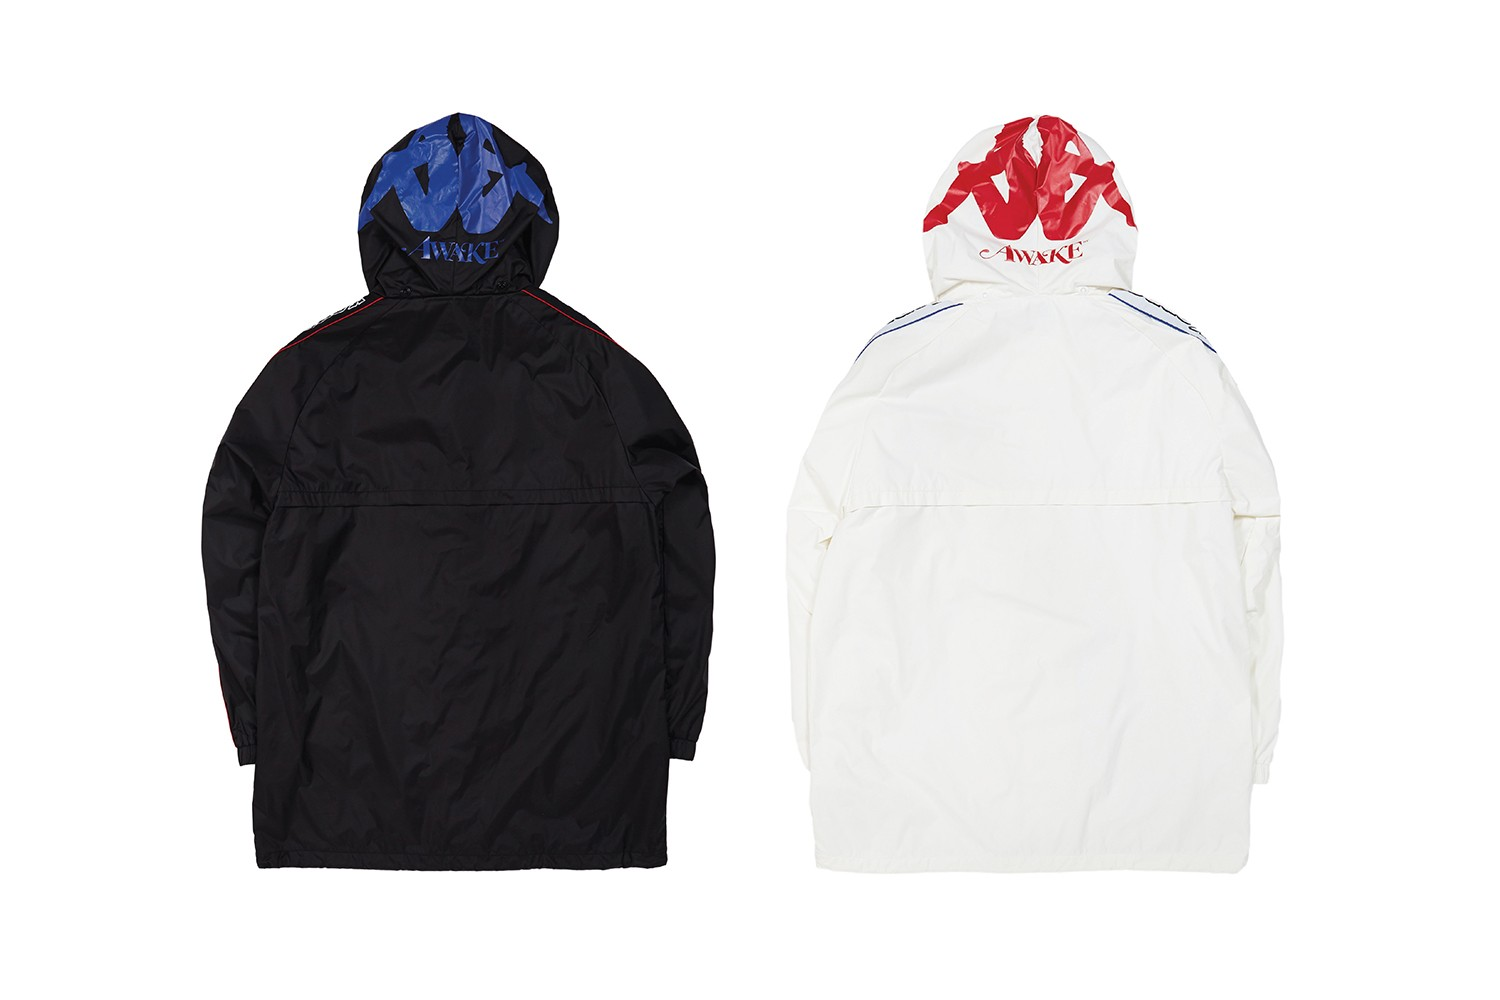 awake ny kappa fall winter capsule collection 90s retro sportswear jackets jerseys bucket hats angelo baque